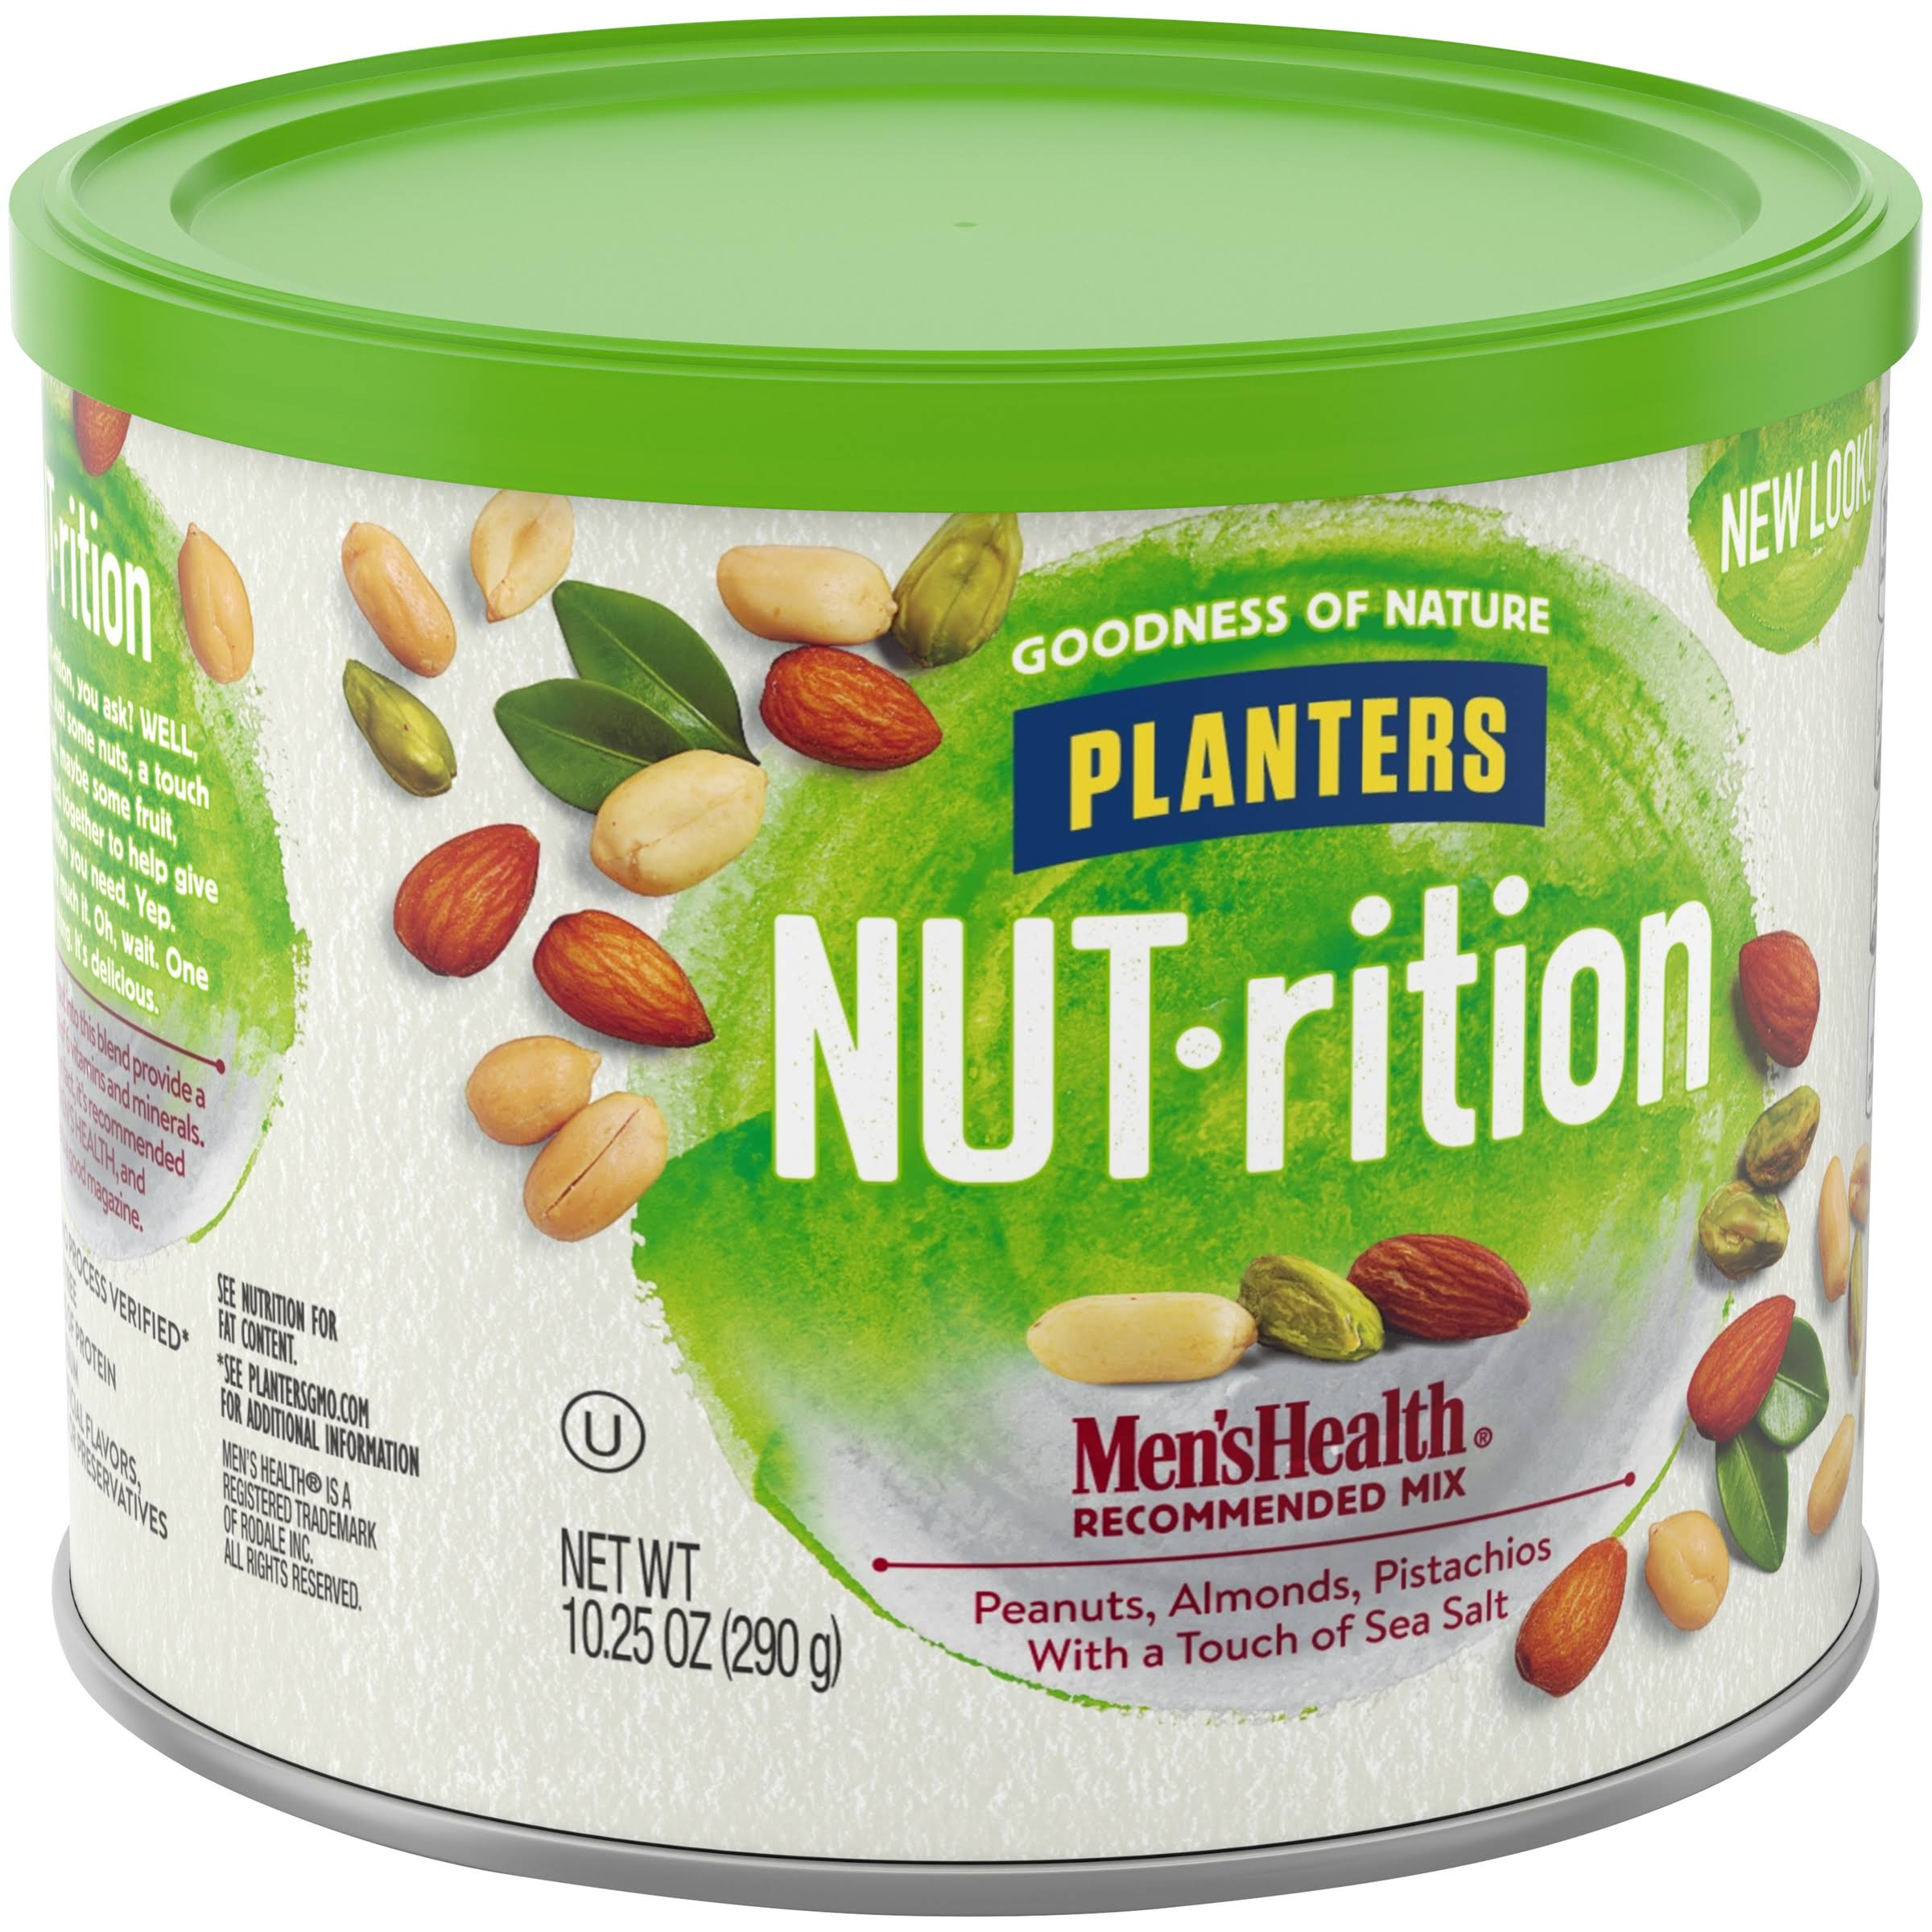 Planters NUT-rition Men's Health Recommended Mix - 10.25oz